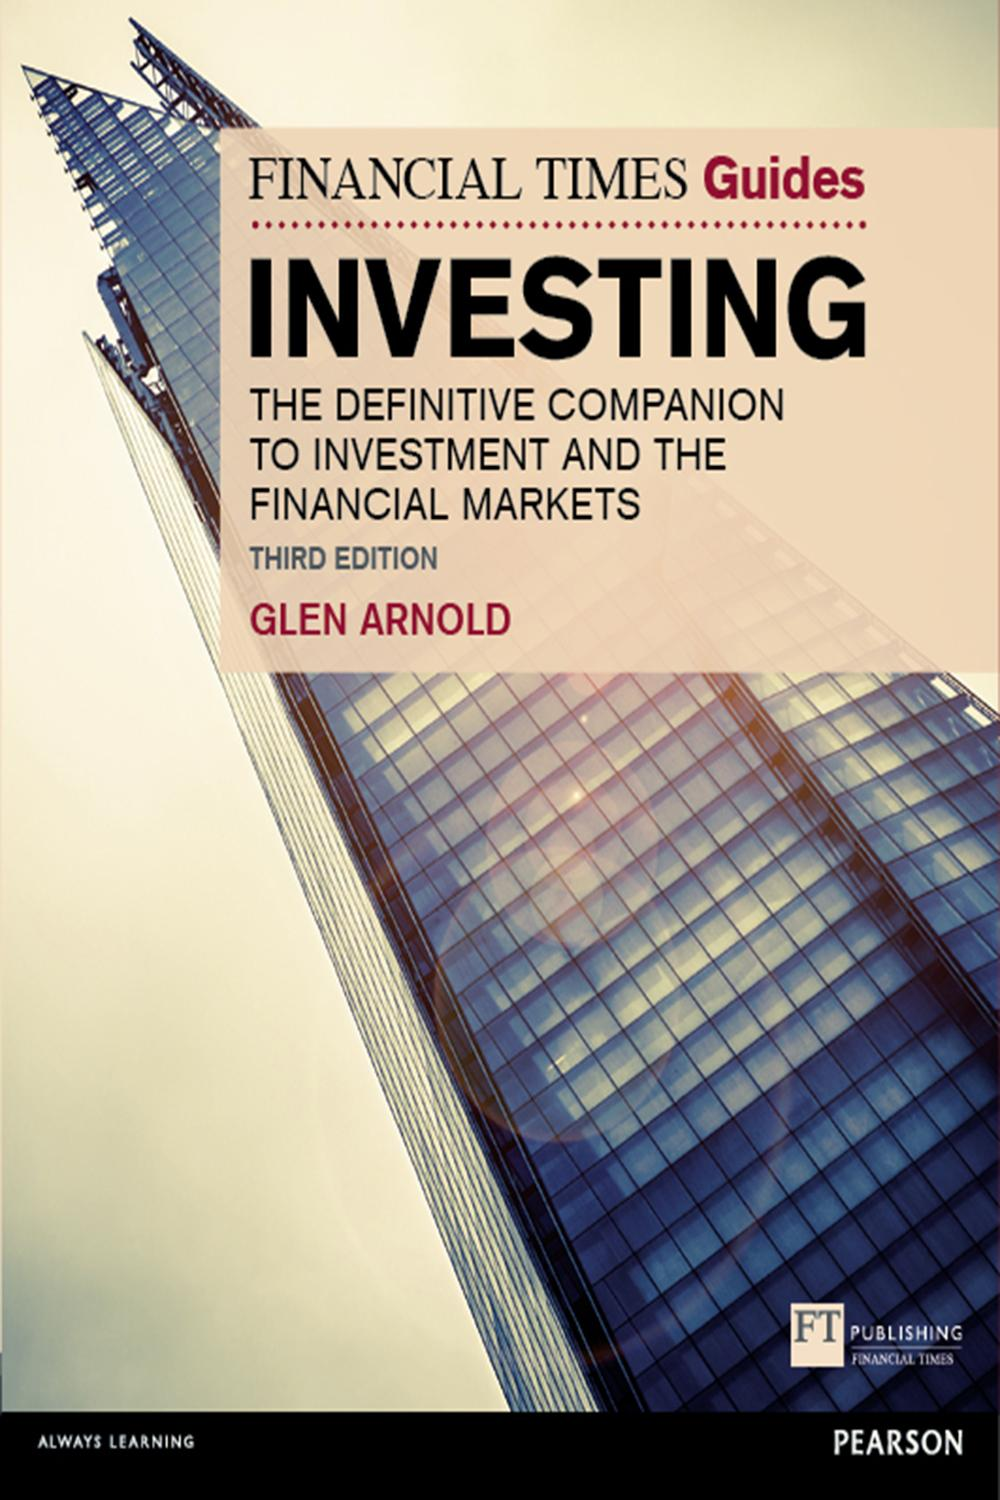 The Financial Times Guide To Investing By Glen Arnold Pdf Ebook